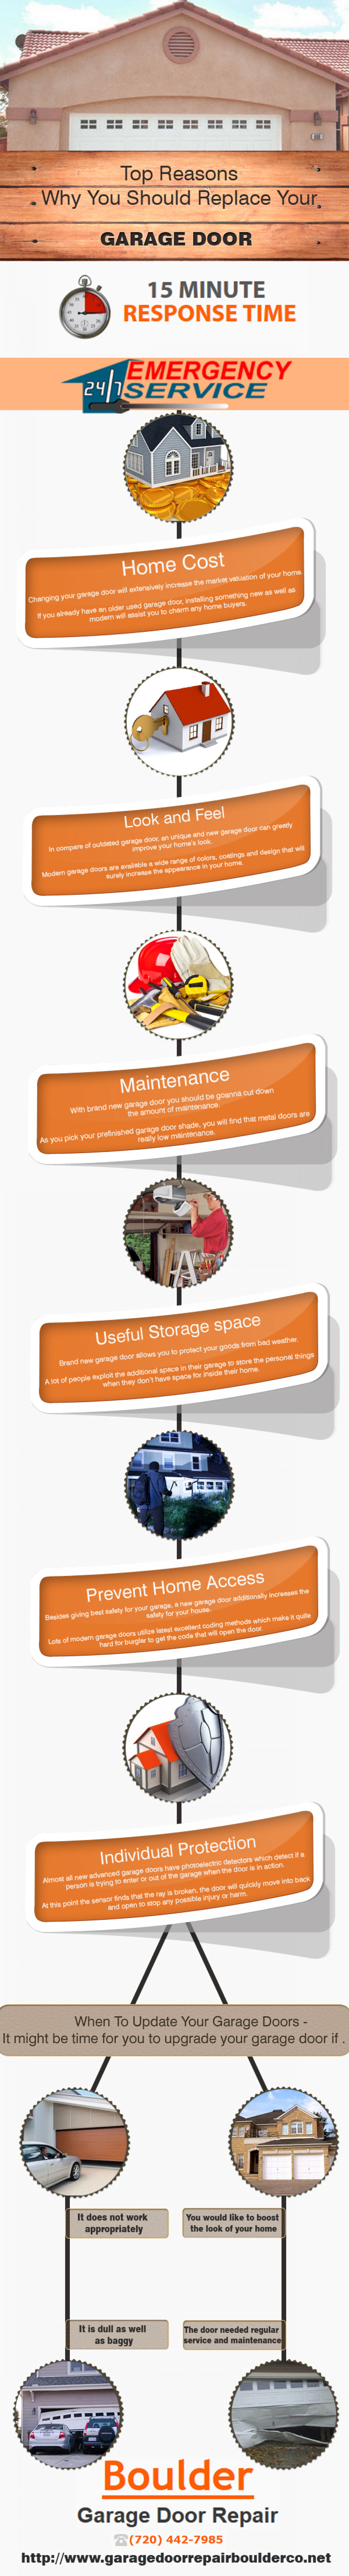 Garage Door Repair Boulder Infographic